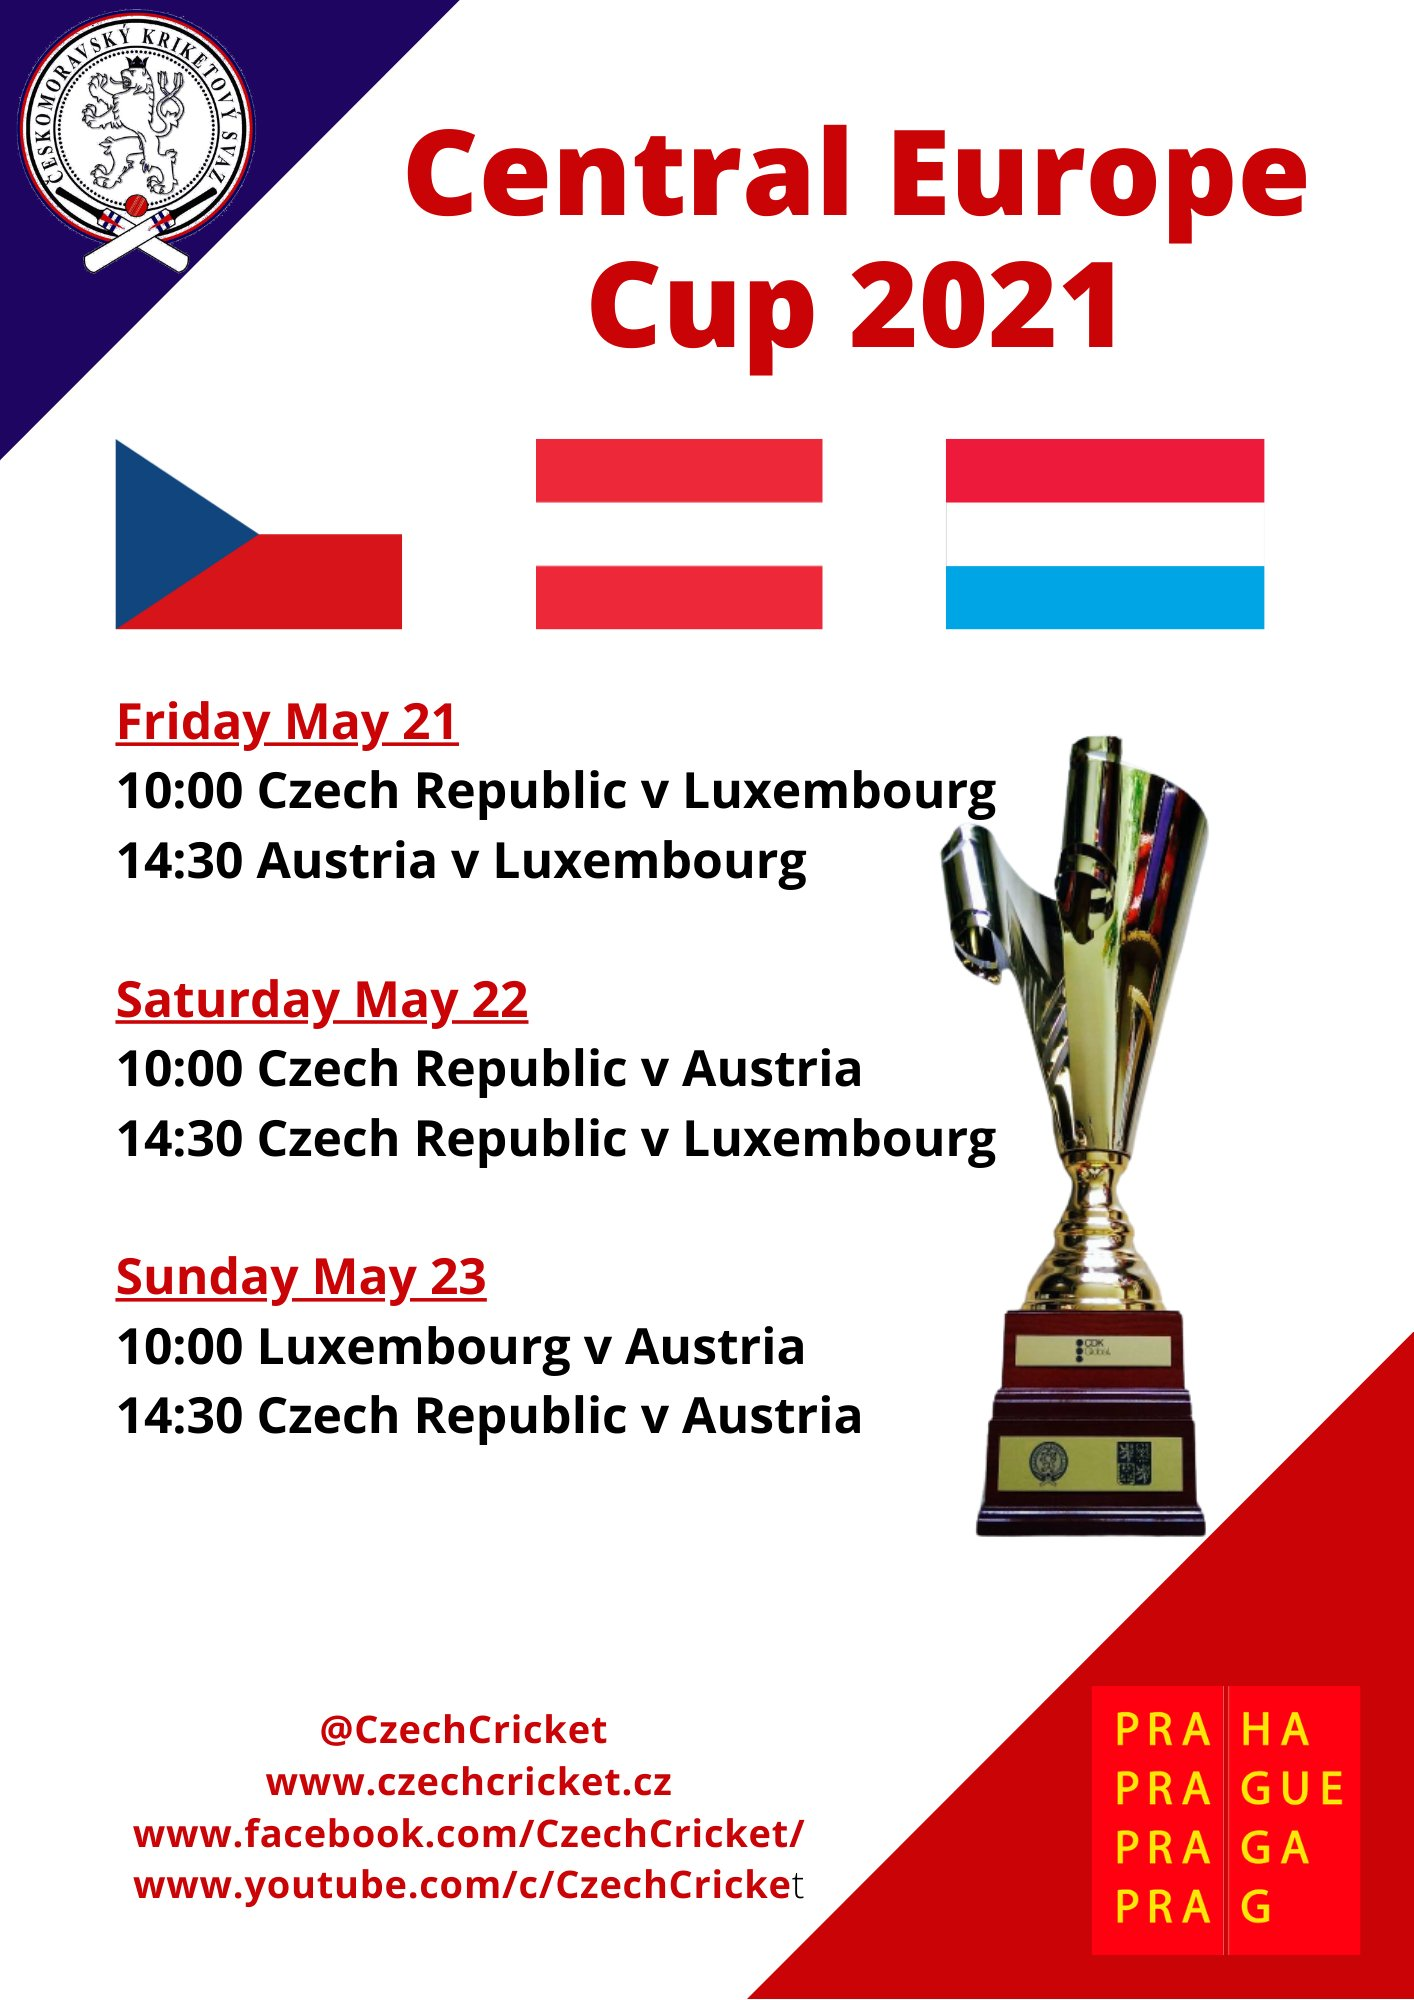 Central Europe Cup t20 2021 Schedule